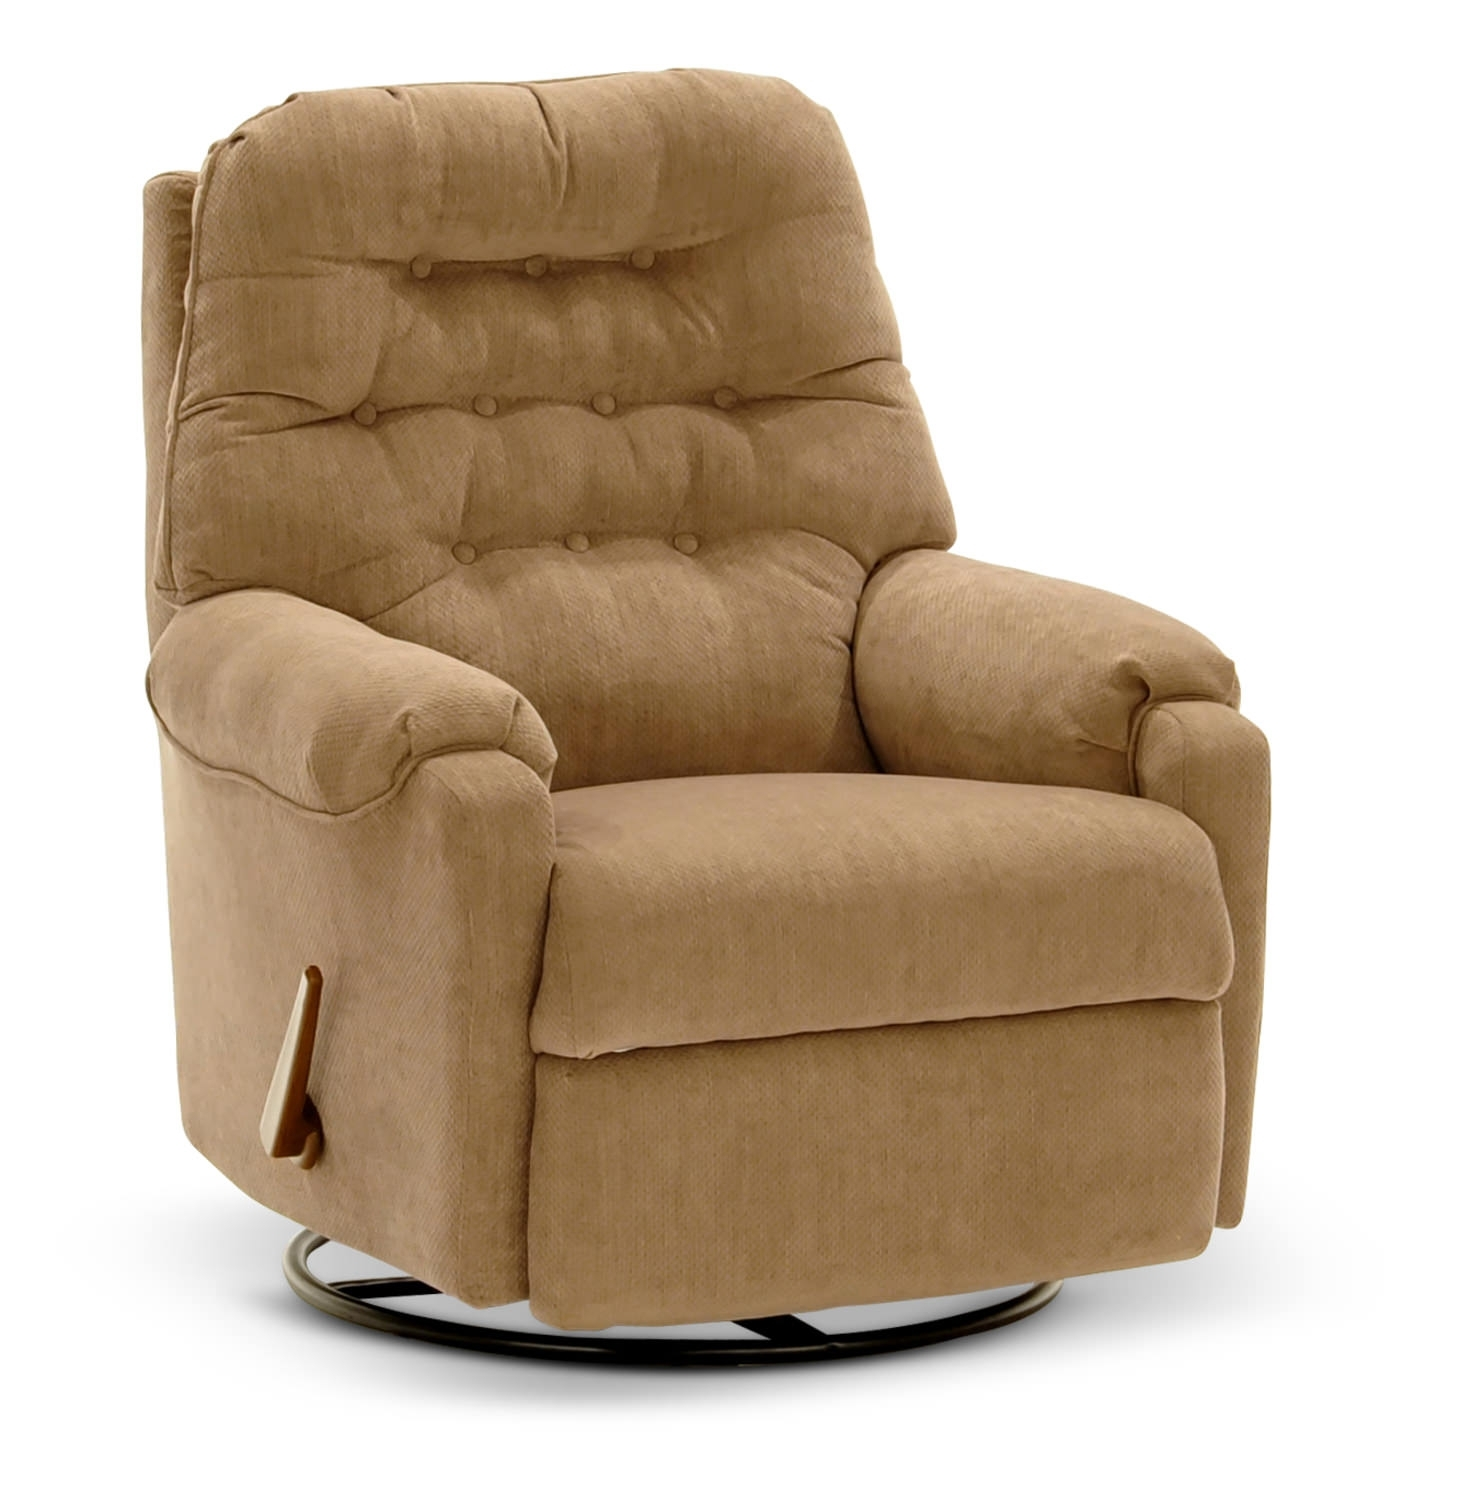 Recliners – Leather, Rocker & Swivel – Hom Furniture Within Travis Dk Grey Leather 6 Piece Power Reclining Sectionals With Power Headrest & Usb (Image 17 of 25)